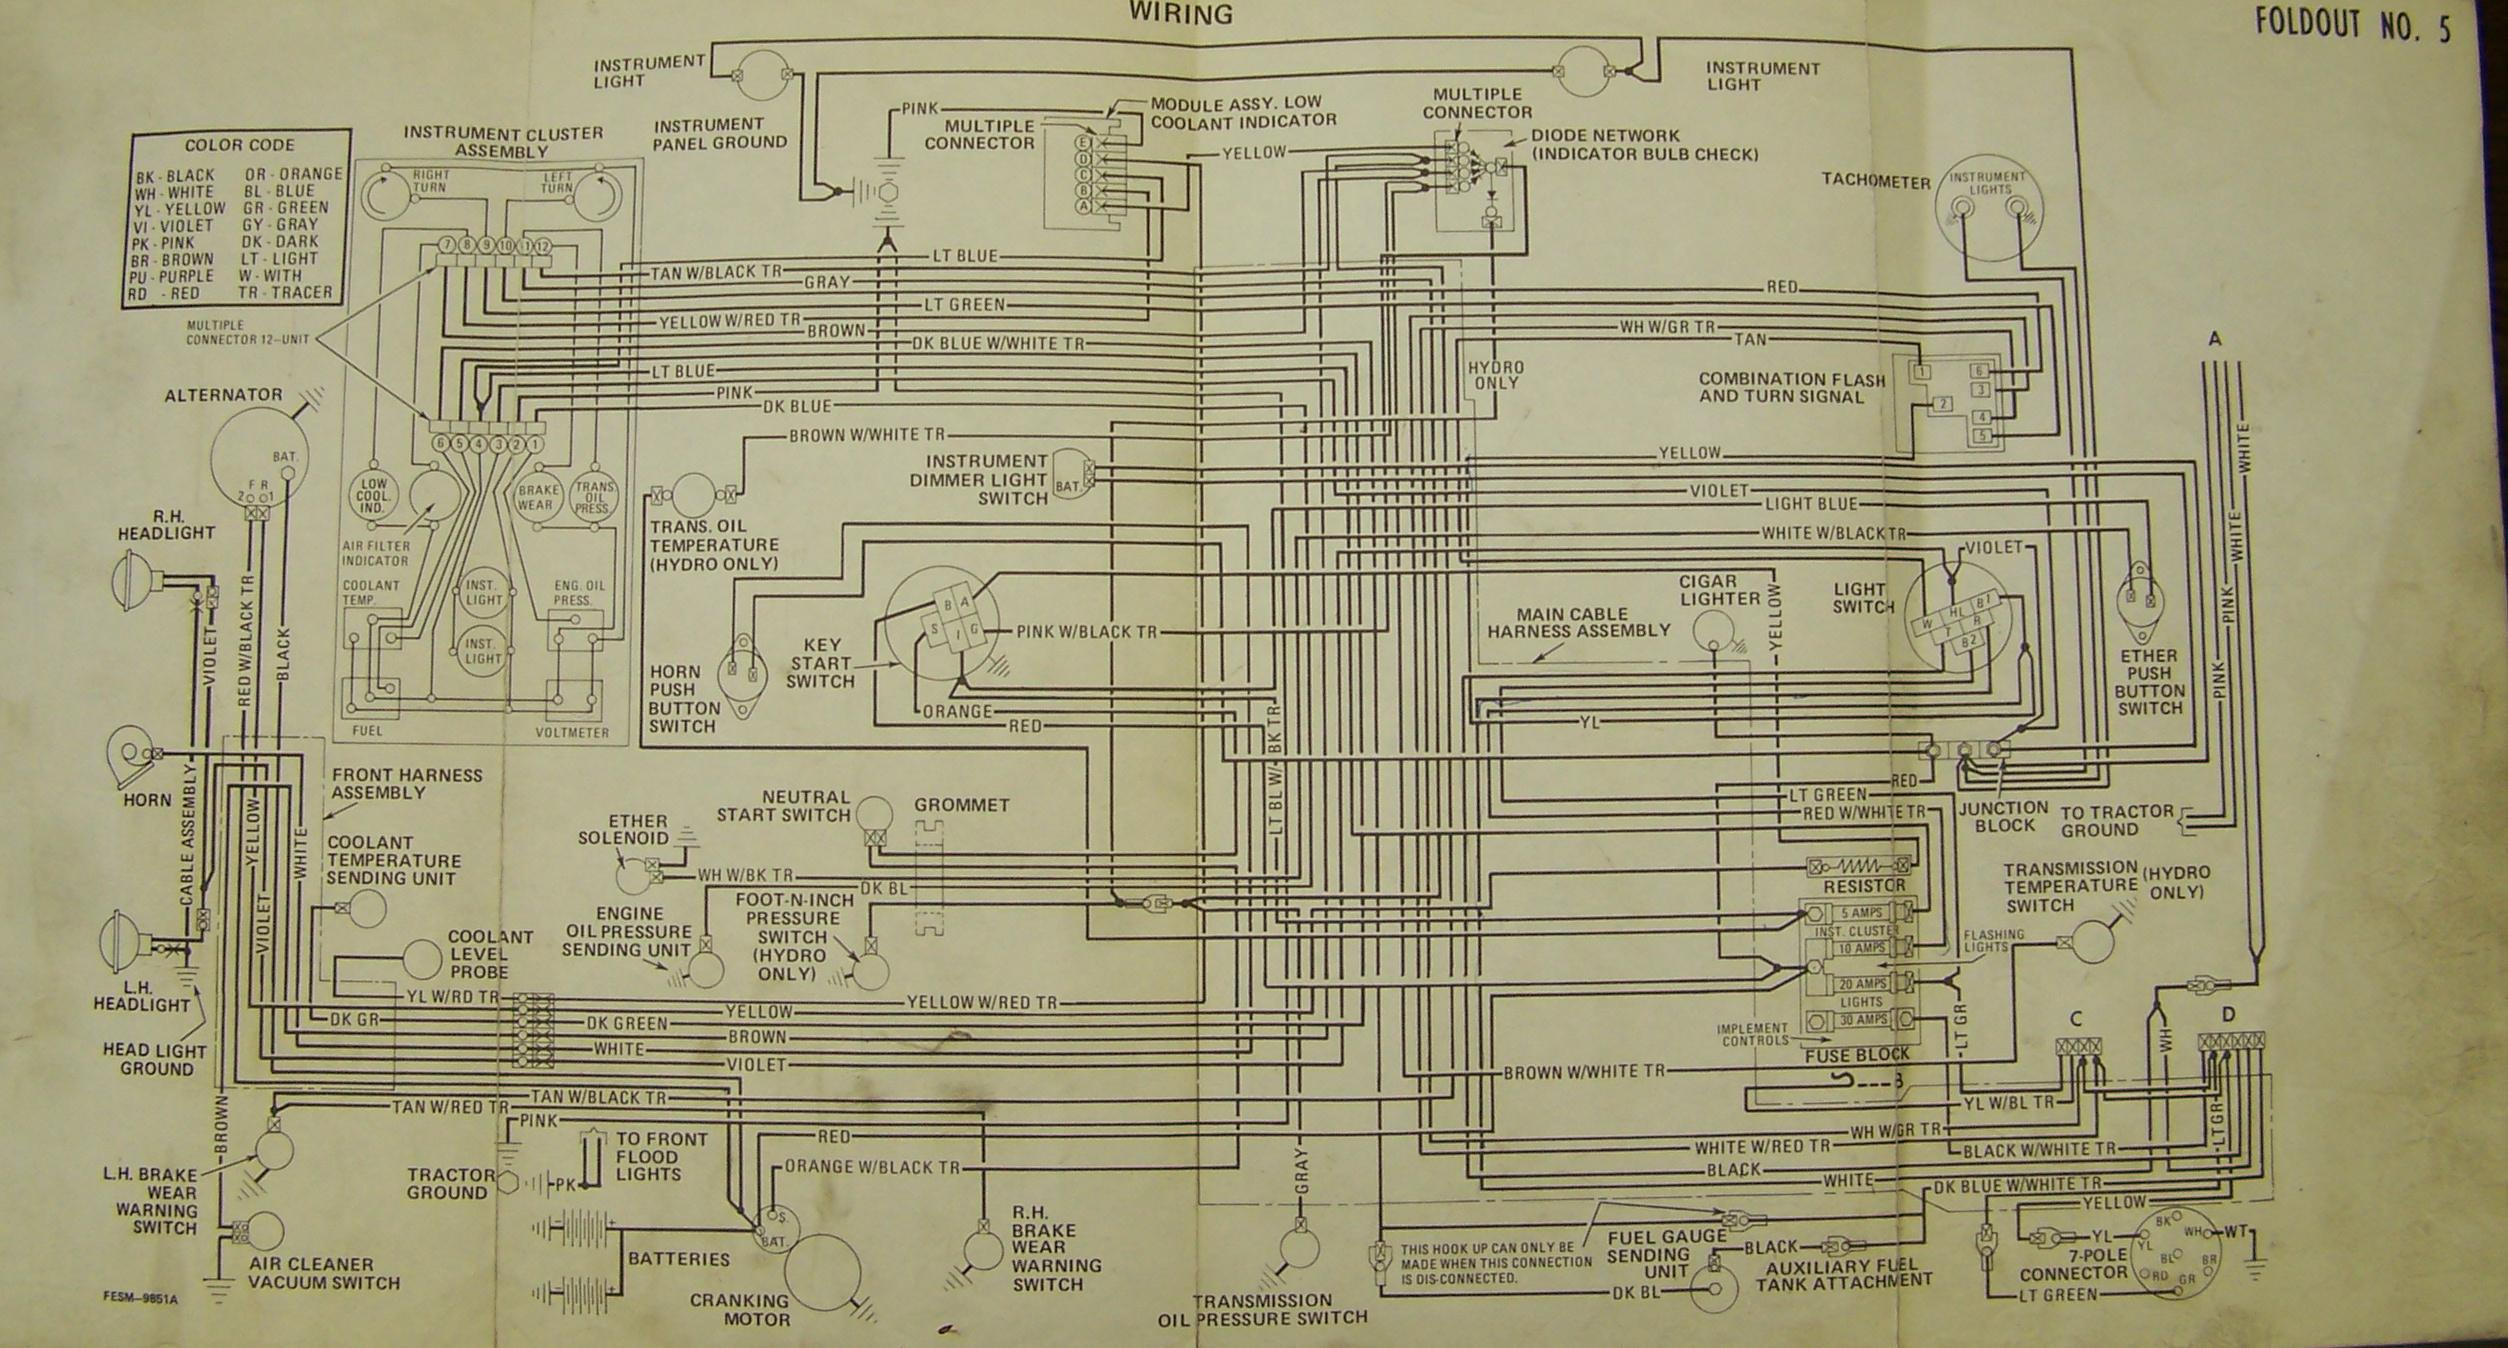 86series5 ih tractor wiring diagram ih tractor power steering \u2022 free wiring case 530 tractor wiring diagram at honlapkeszites.co